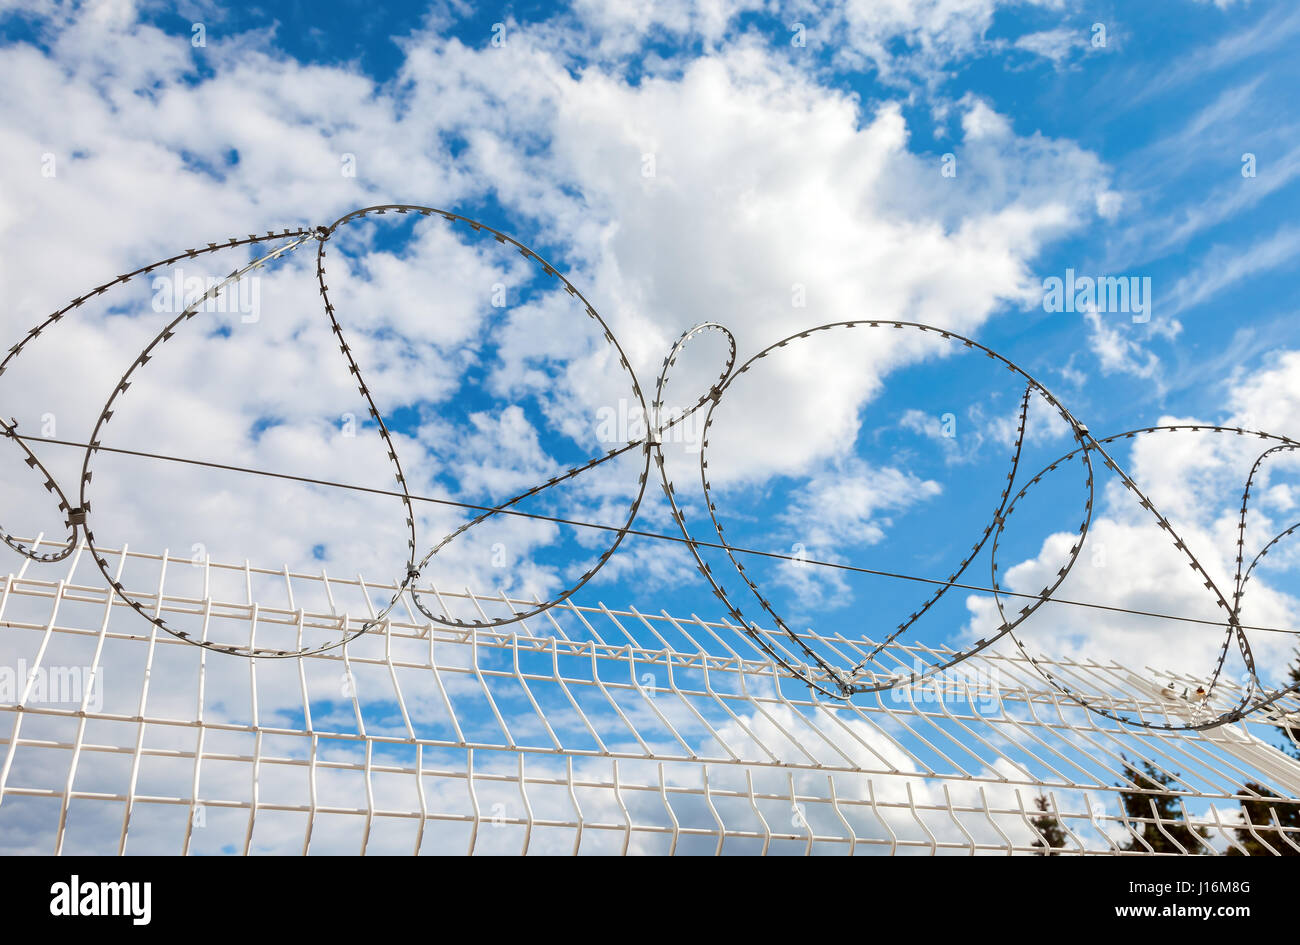 Barbed wire against the blue sky background. Protective fencing specially protected object of barbed wire - Stock Image